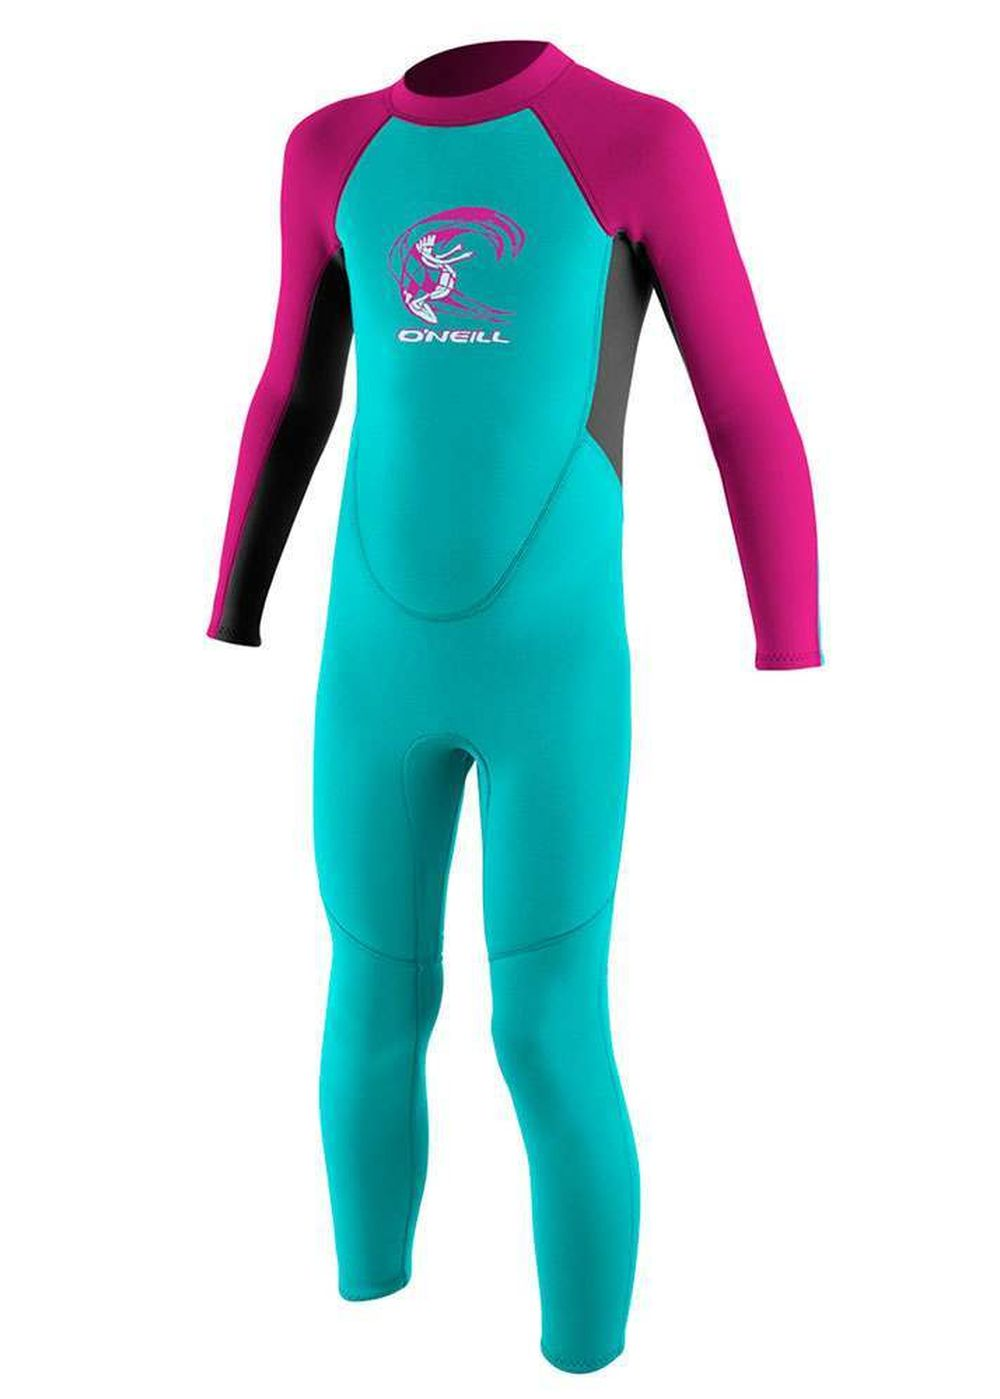 Oneill Toddler Reactor 3/2 Wetsuit Aqua/grph/bry Picture